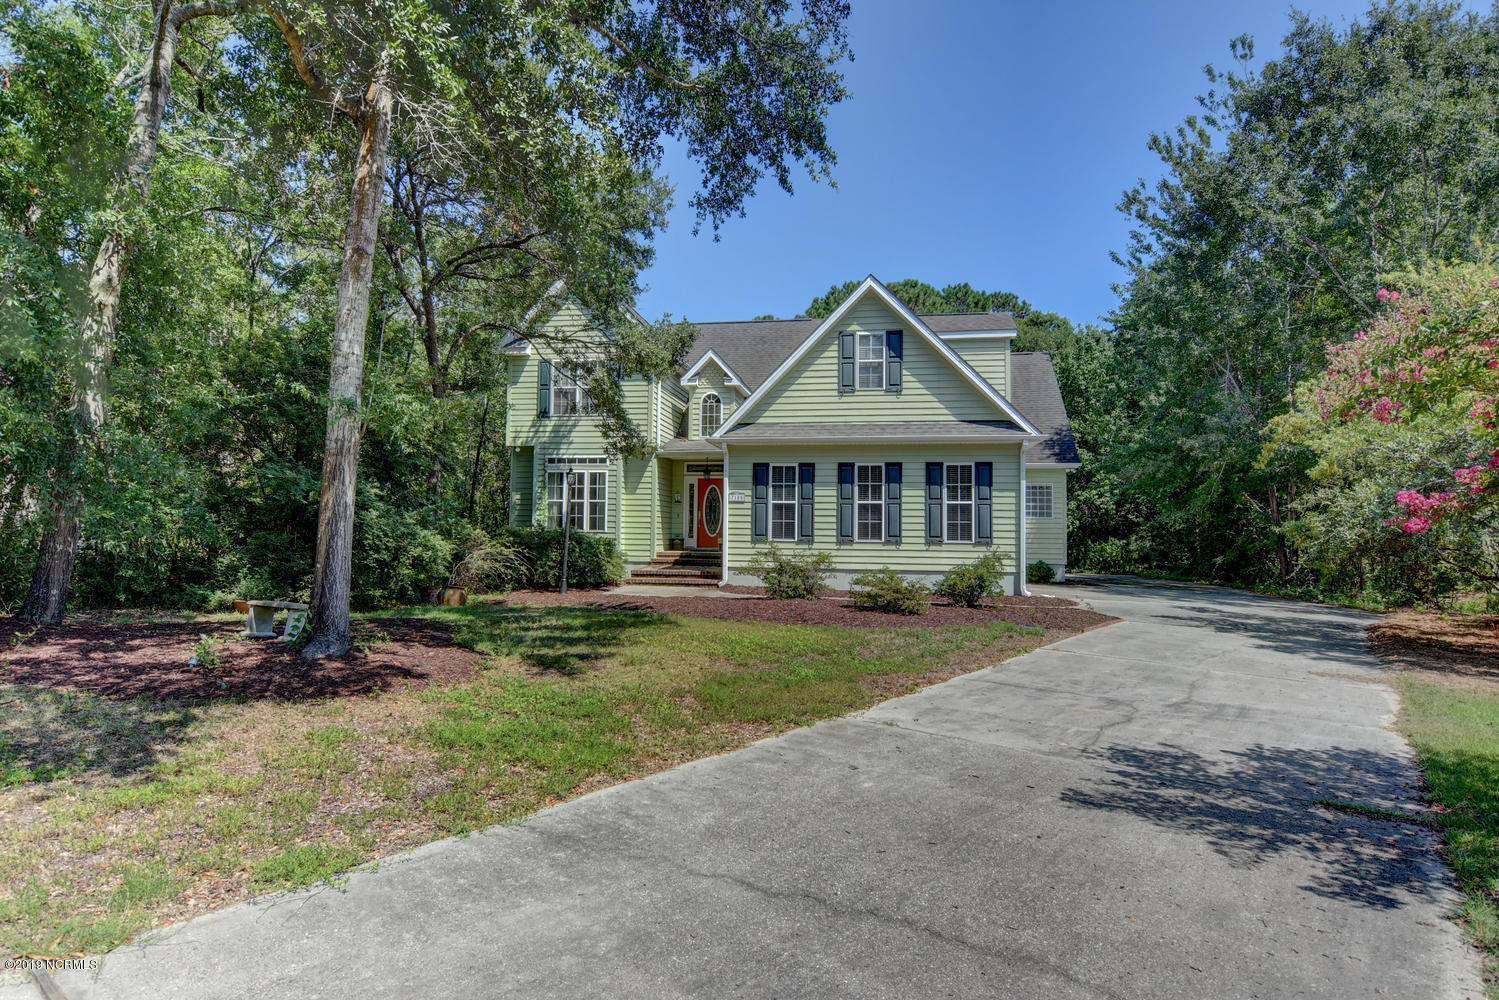 7105 Sea Bass Lane Wilmington, NC 28409